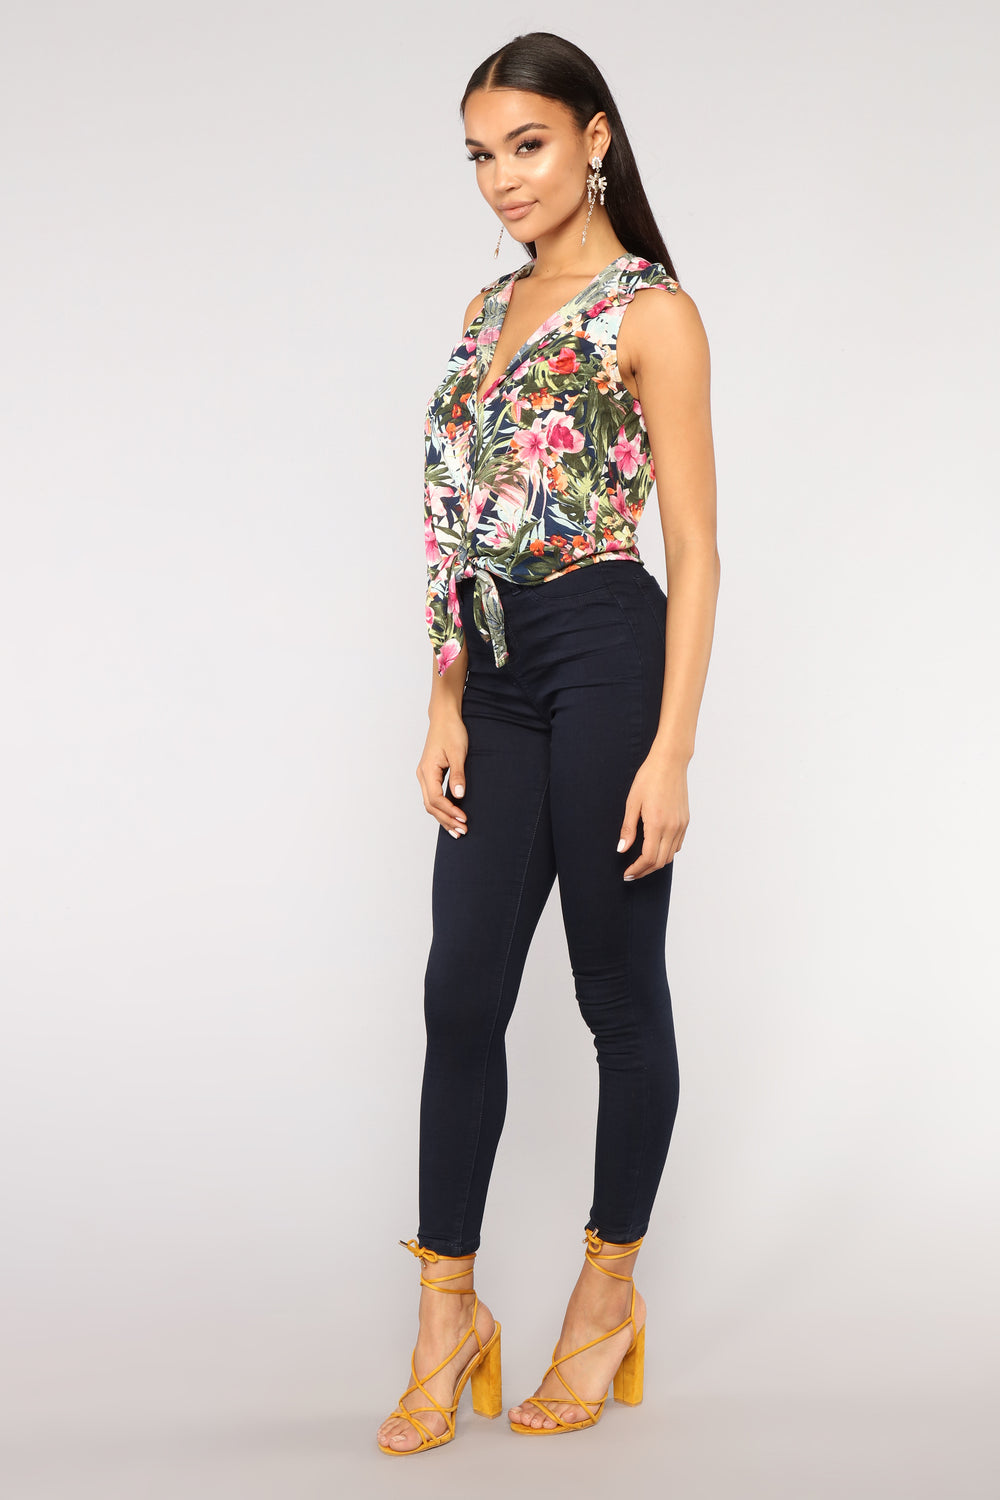 Ahead Of The Game Floral Top - Blue